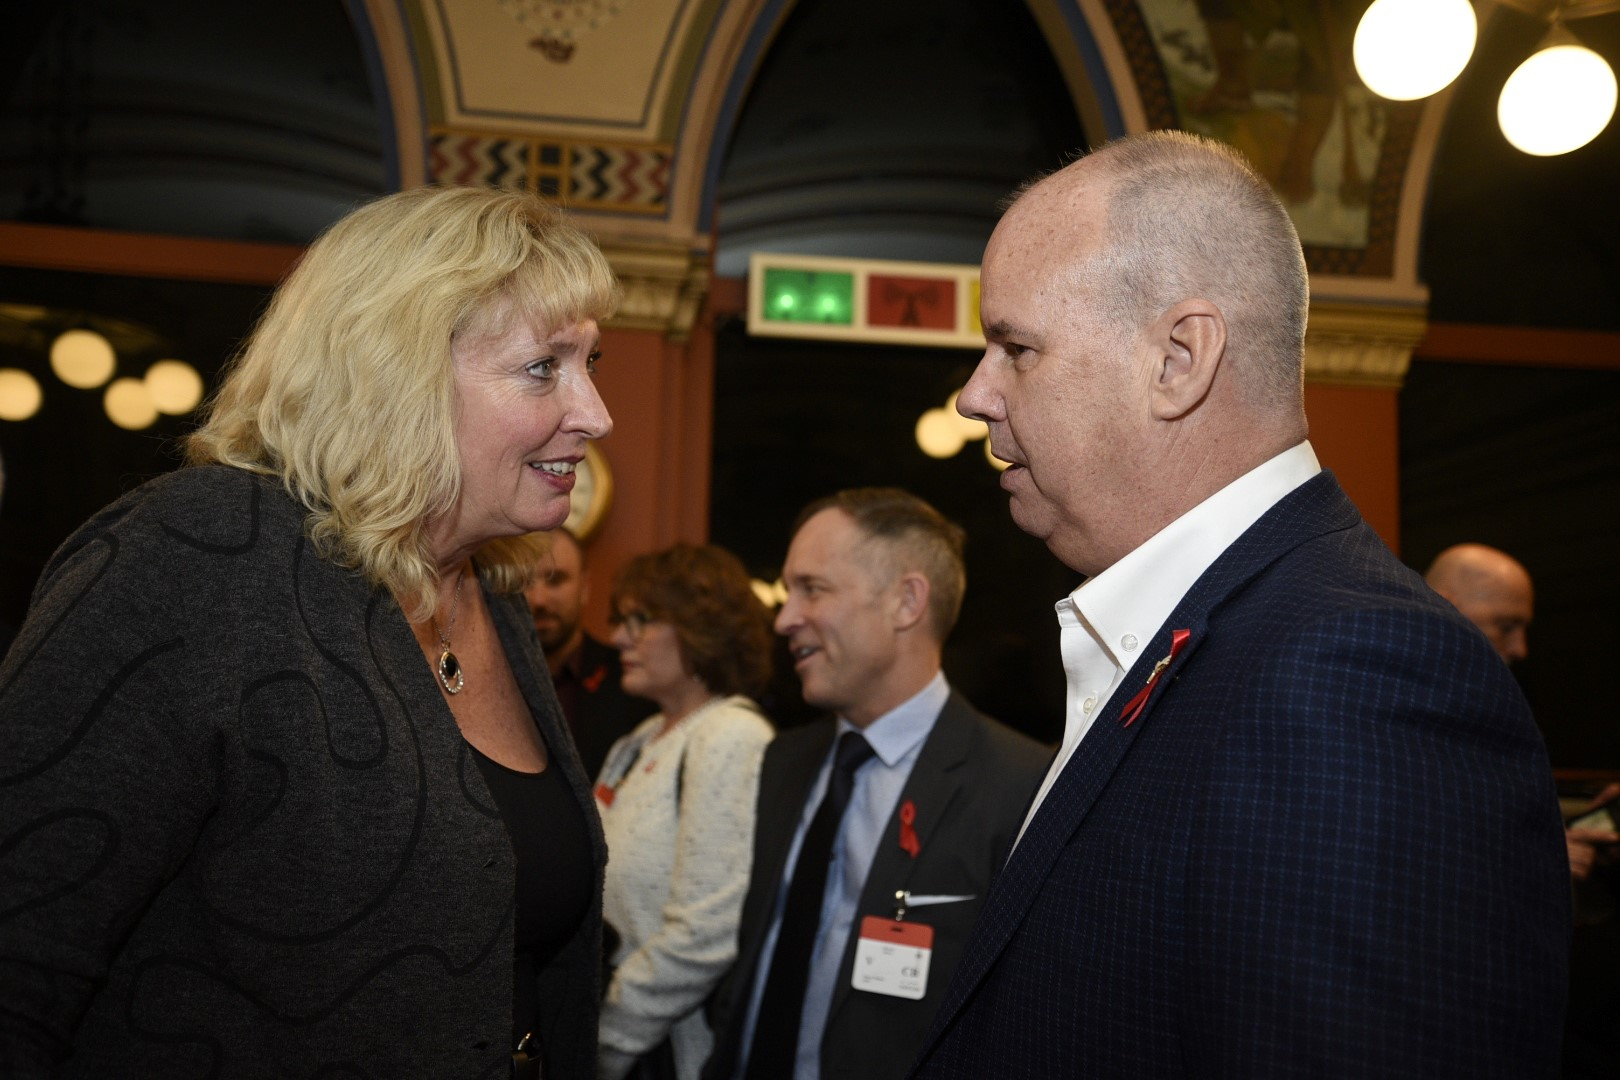 Ms. Marilyn Gladu, Conservative Health Critic, and Mr. Gary LaCasse, Executive Director of the Canadian AIDS Society.